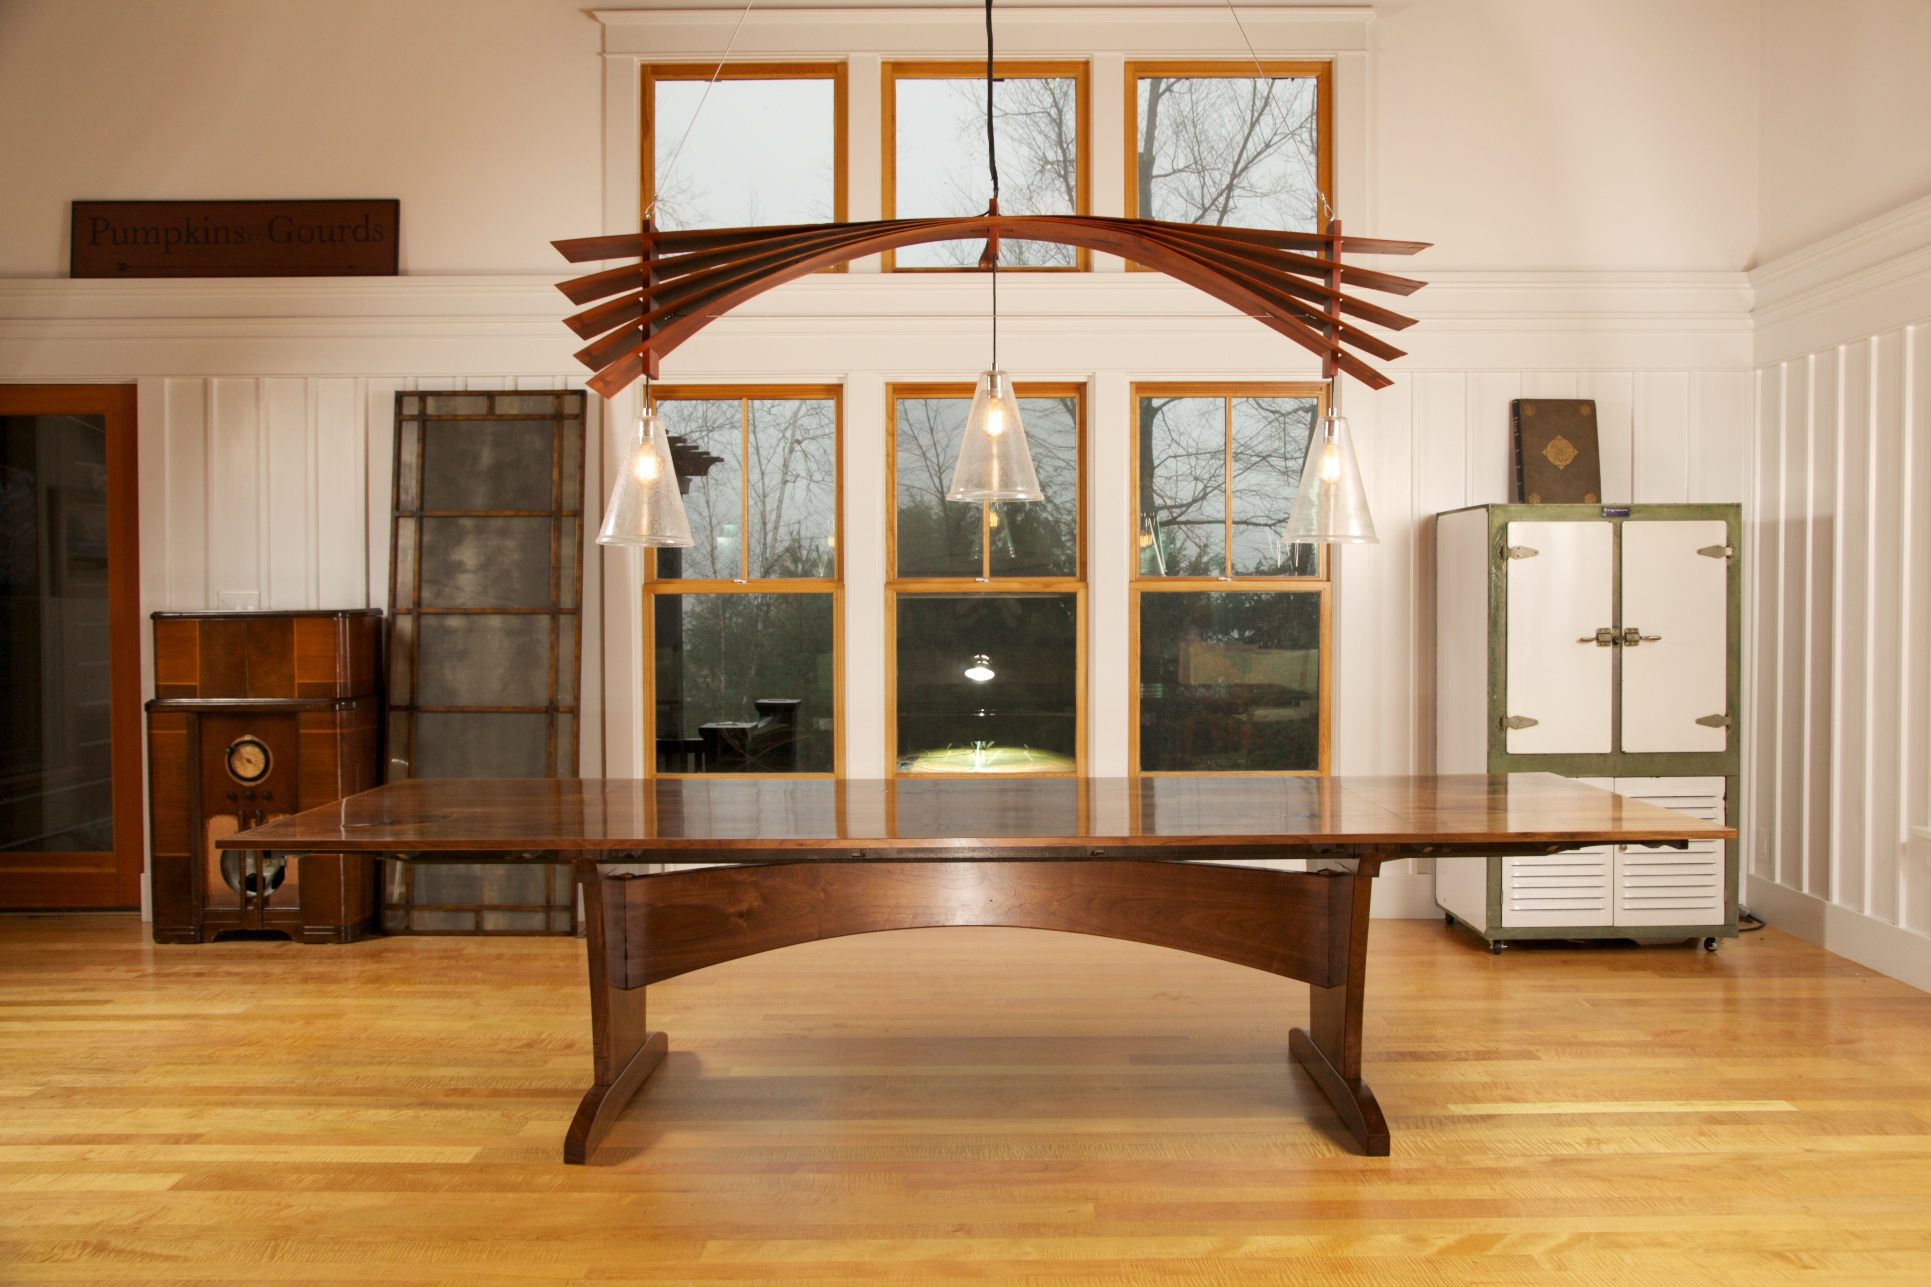 The Dining Room Table Stretcher Design Is From The Chandelier